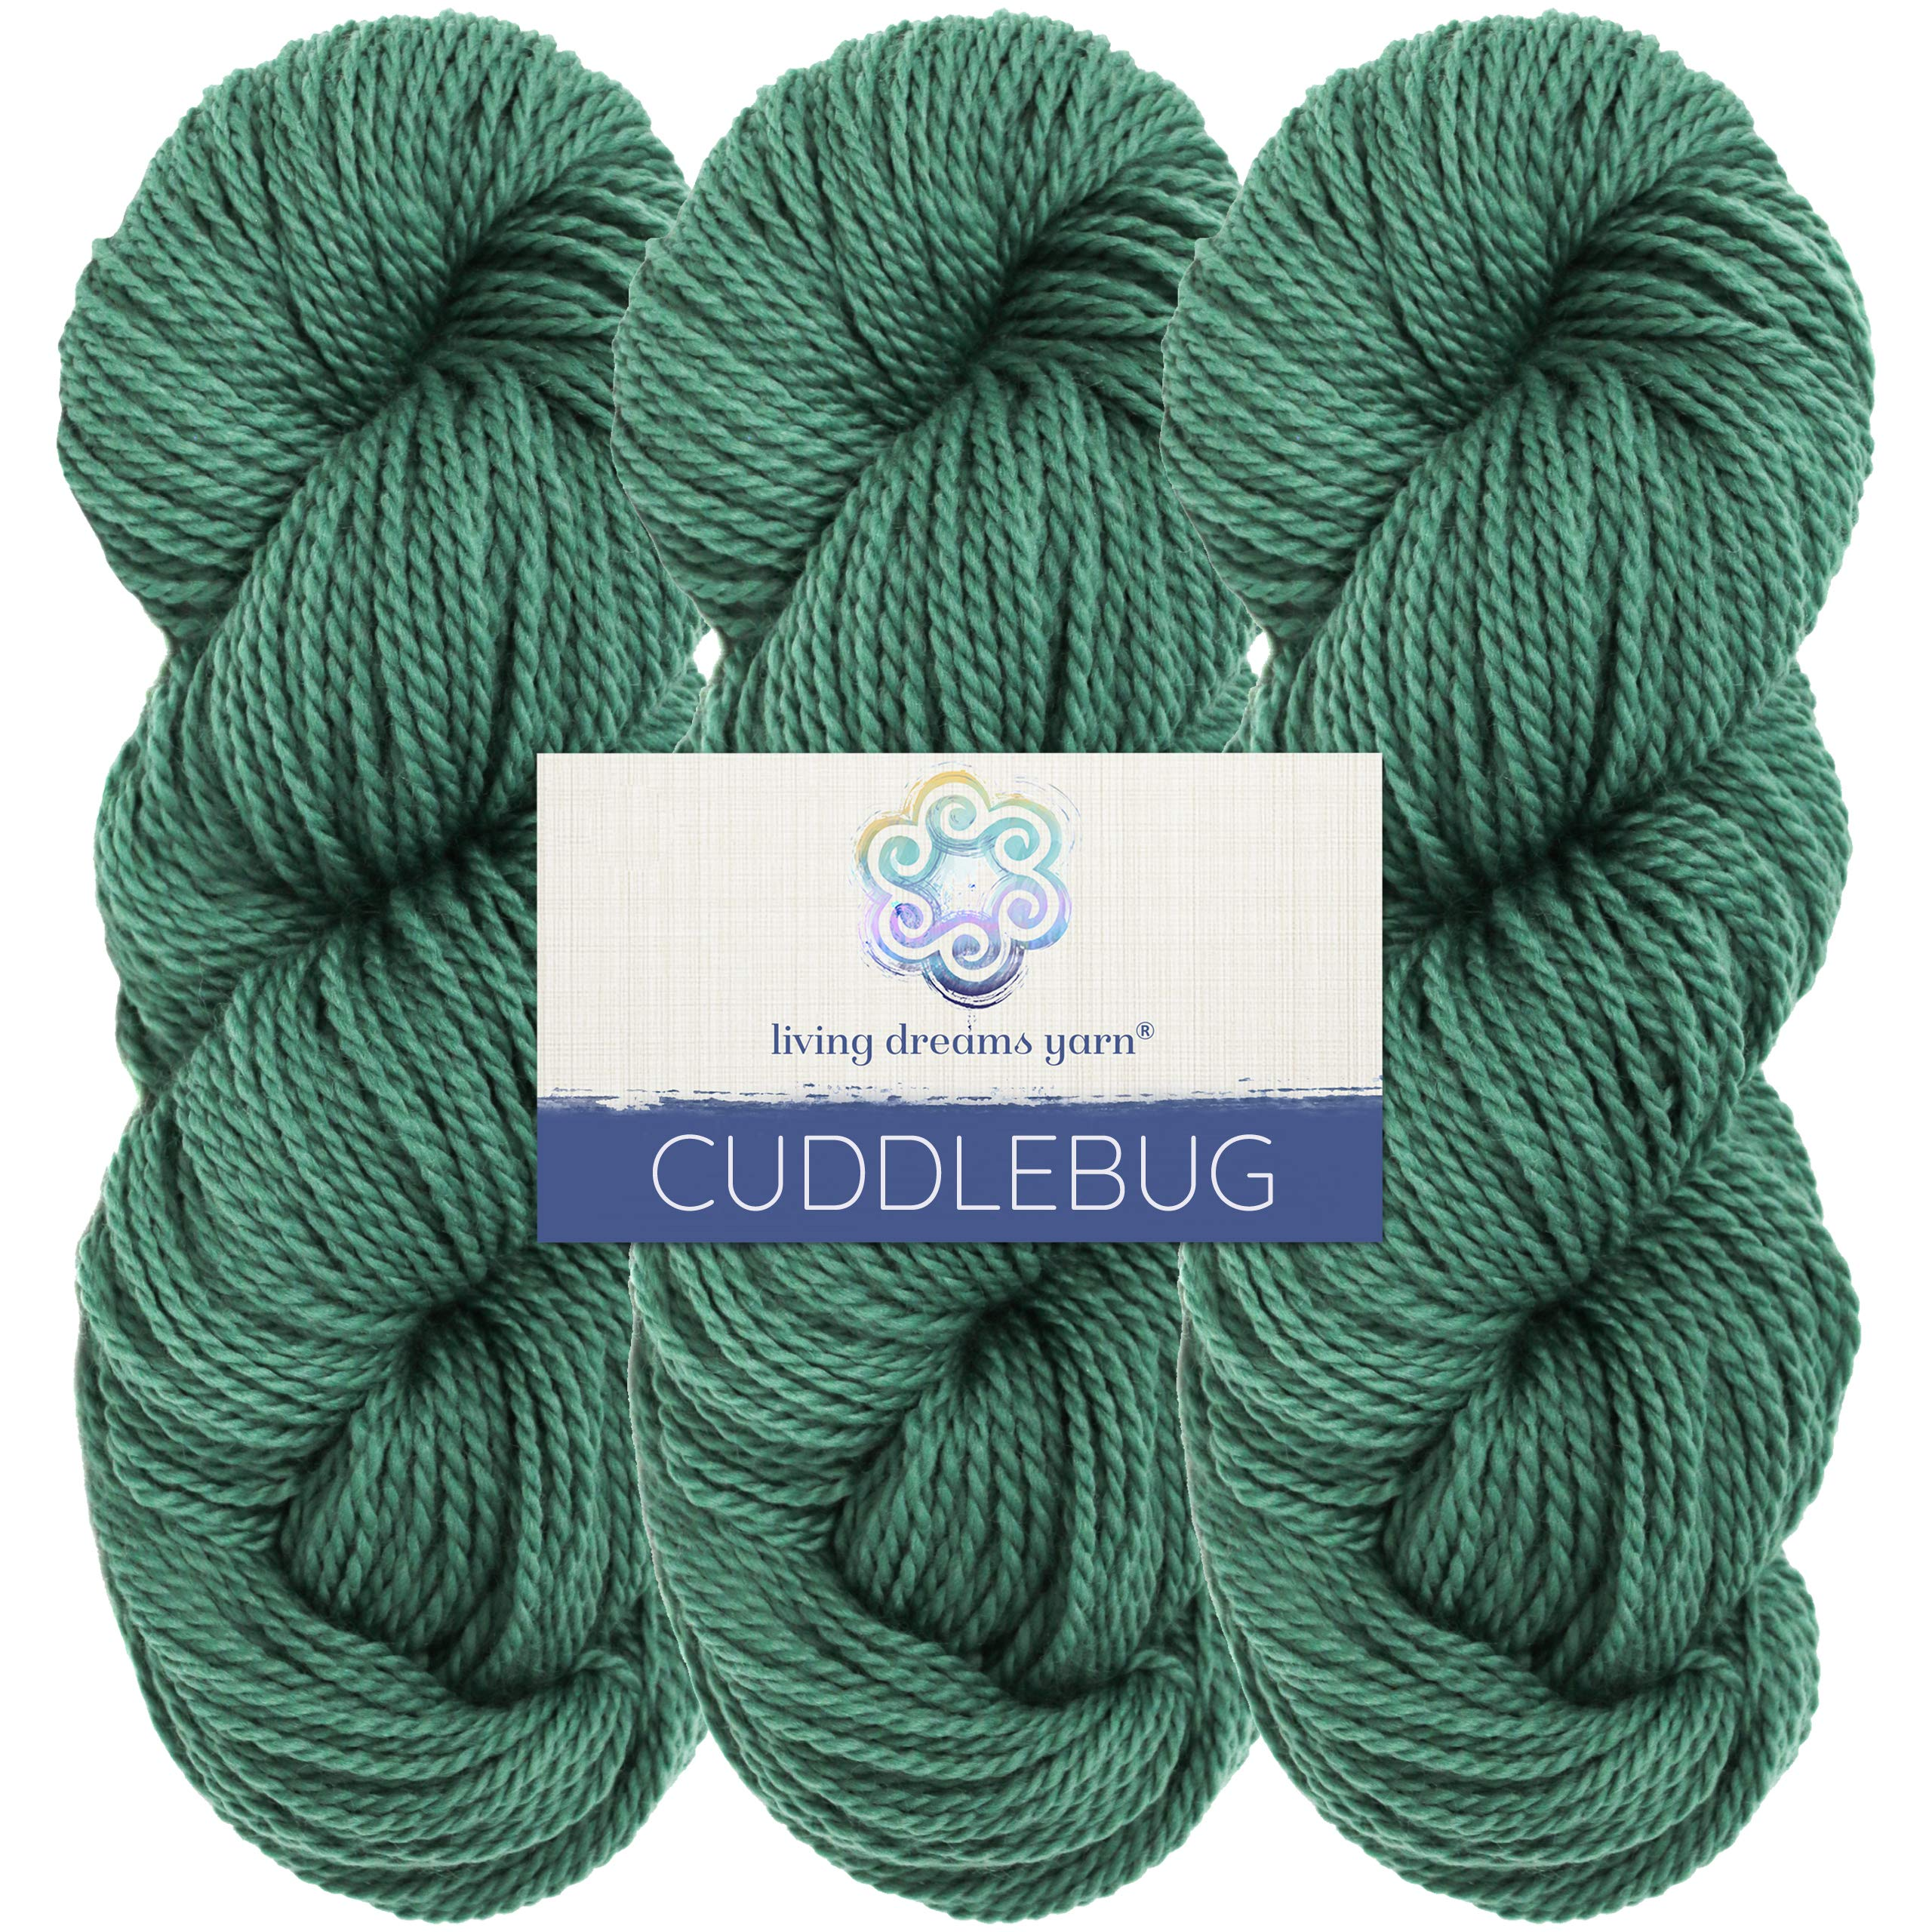 Living Dreams Yarn CUDDLEBUG DK - Botanically Dyed with Vegan Plant Dyes. Superfine Merino Spun in the Pacific Northwest. Cruelty Free & Responsibly Sourced. Three Pack: Olivia